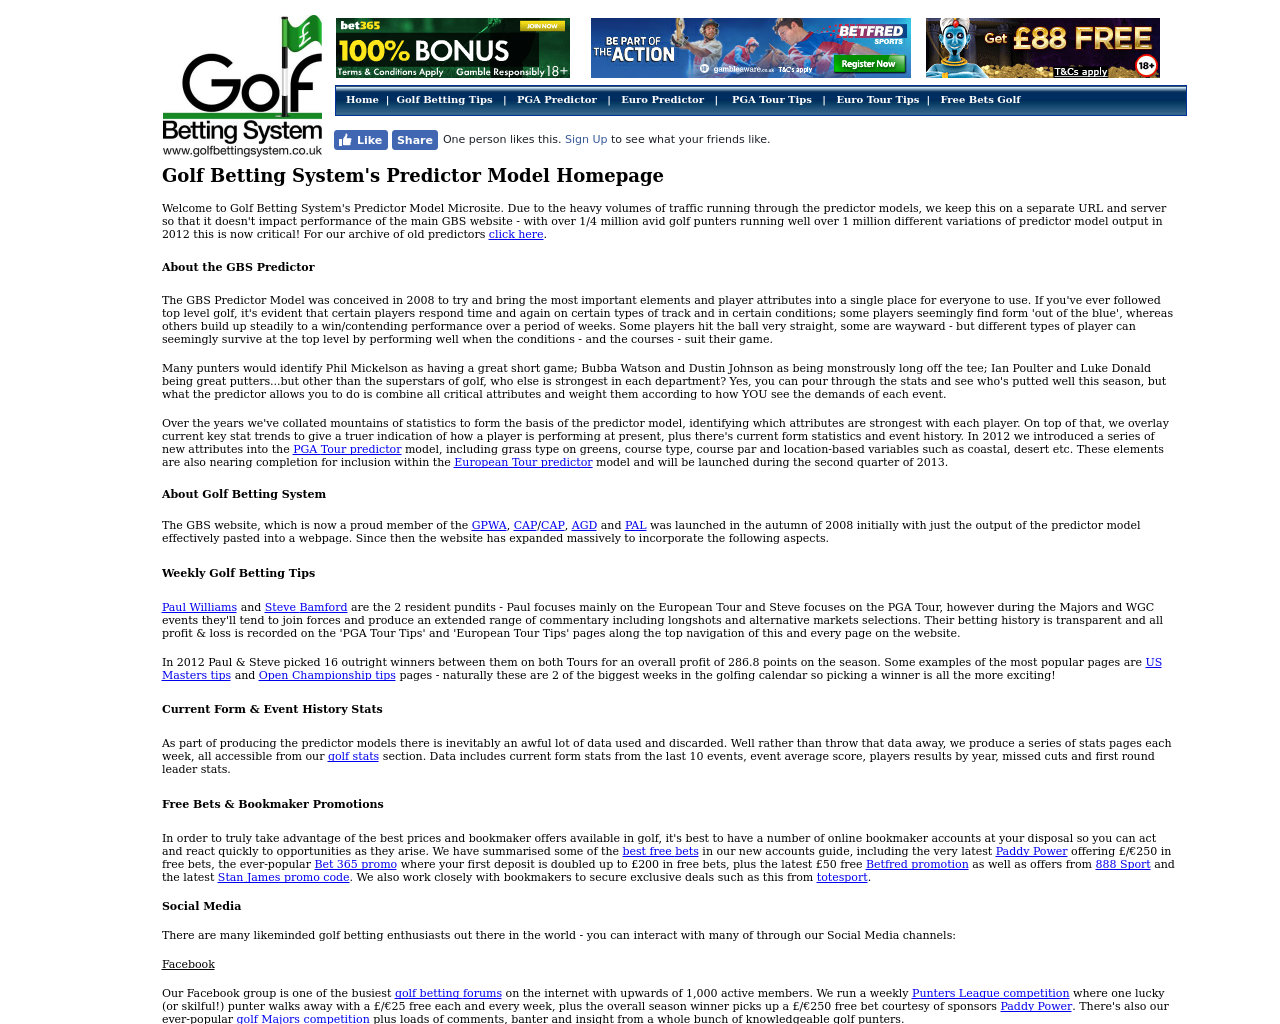 Golf-Betting-System-Advertising-Reviews-Pricing